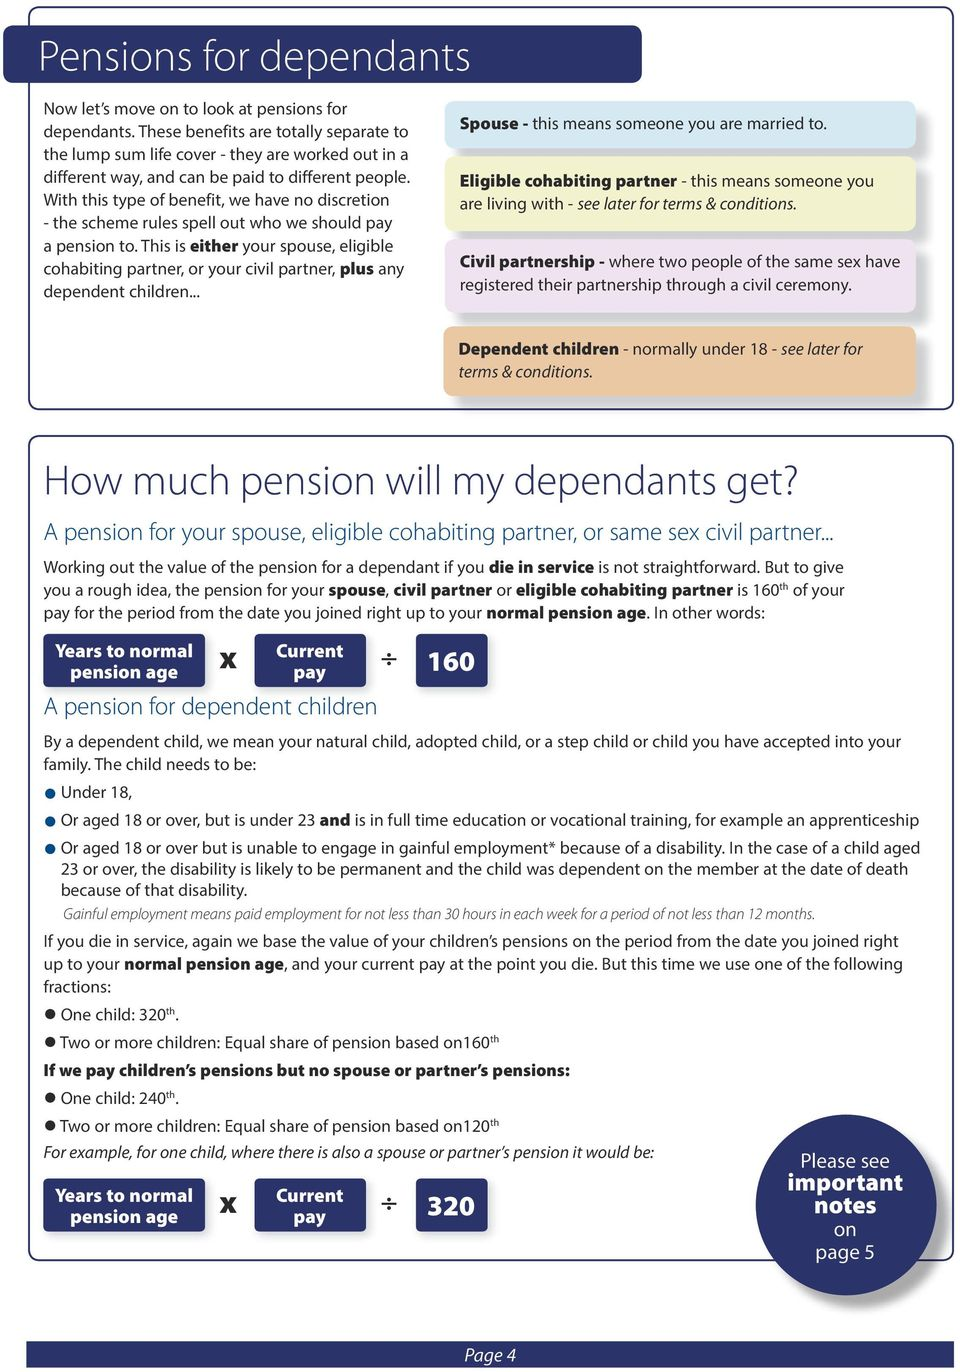 With this type of benefit, we have no discretion - the scheme rules spell out who we should pay a pension to.